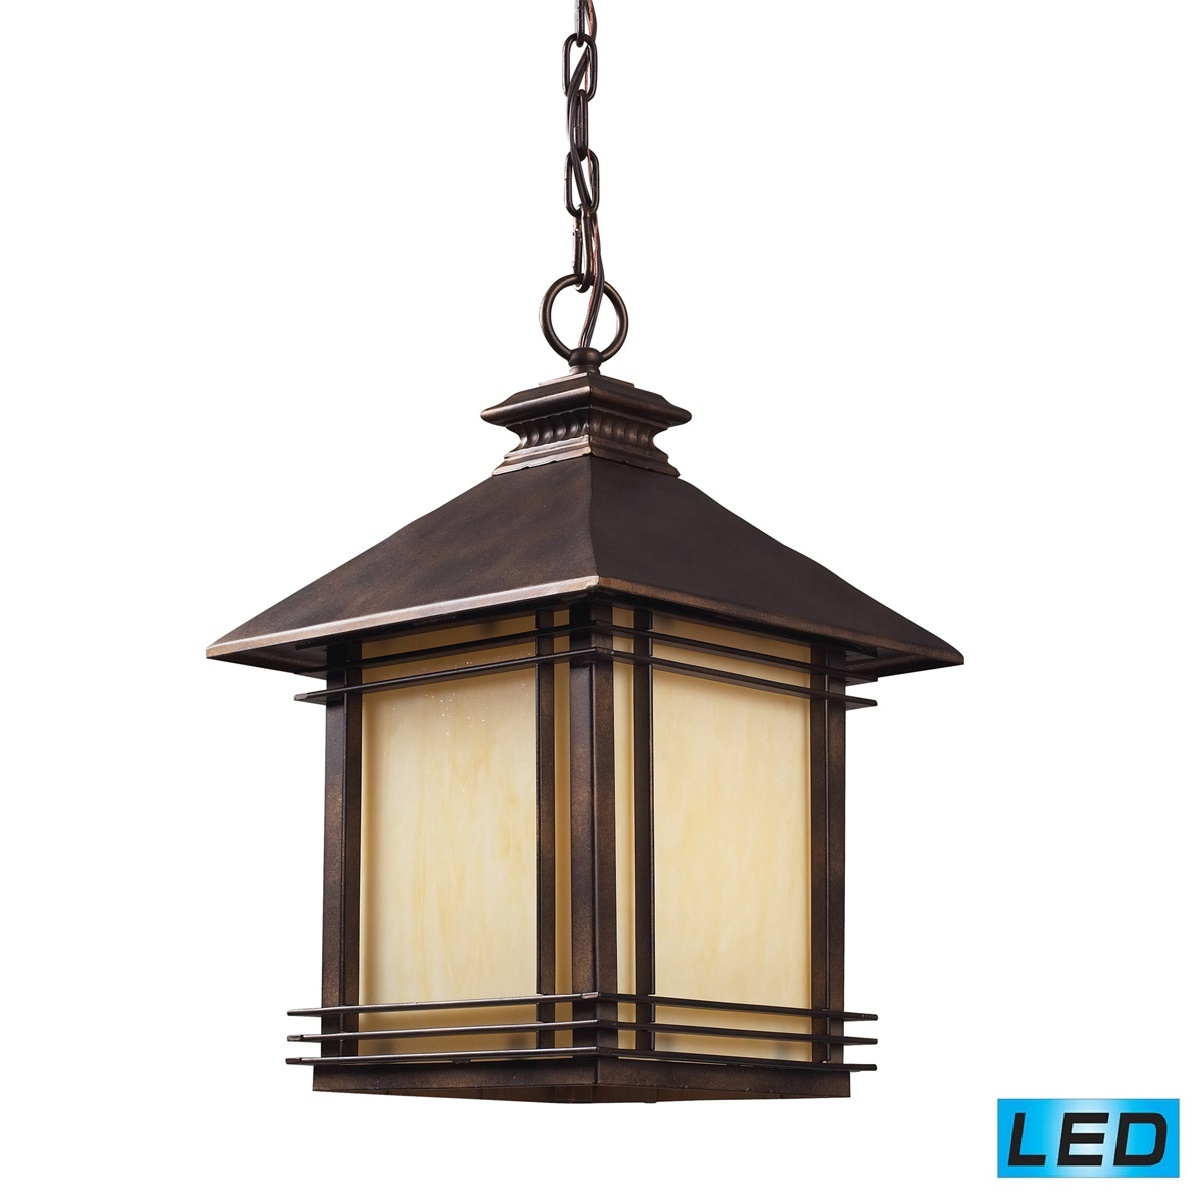 ELK Lighting Blackwell 42103 Modern Outdoor Lighting Brooklyn,New York- Accentuations Brand